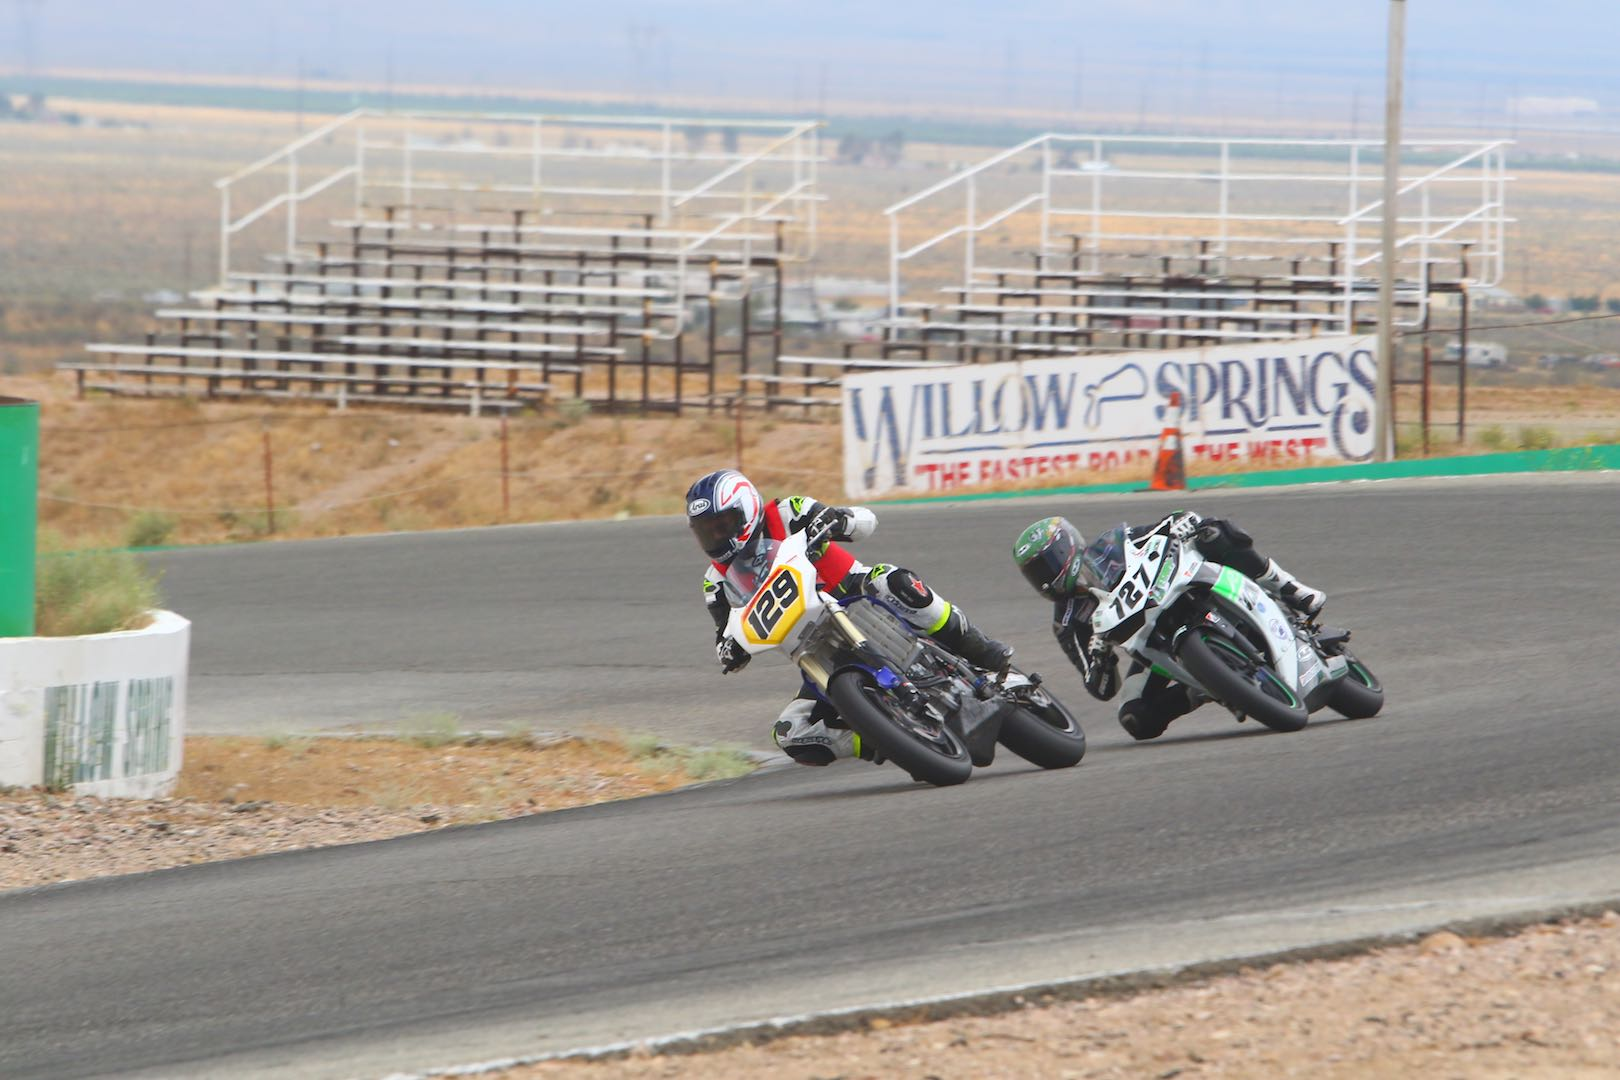 Marc Rittner Amateur racing at Willow Springs WERA